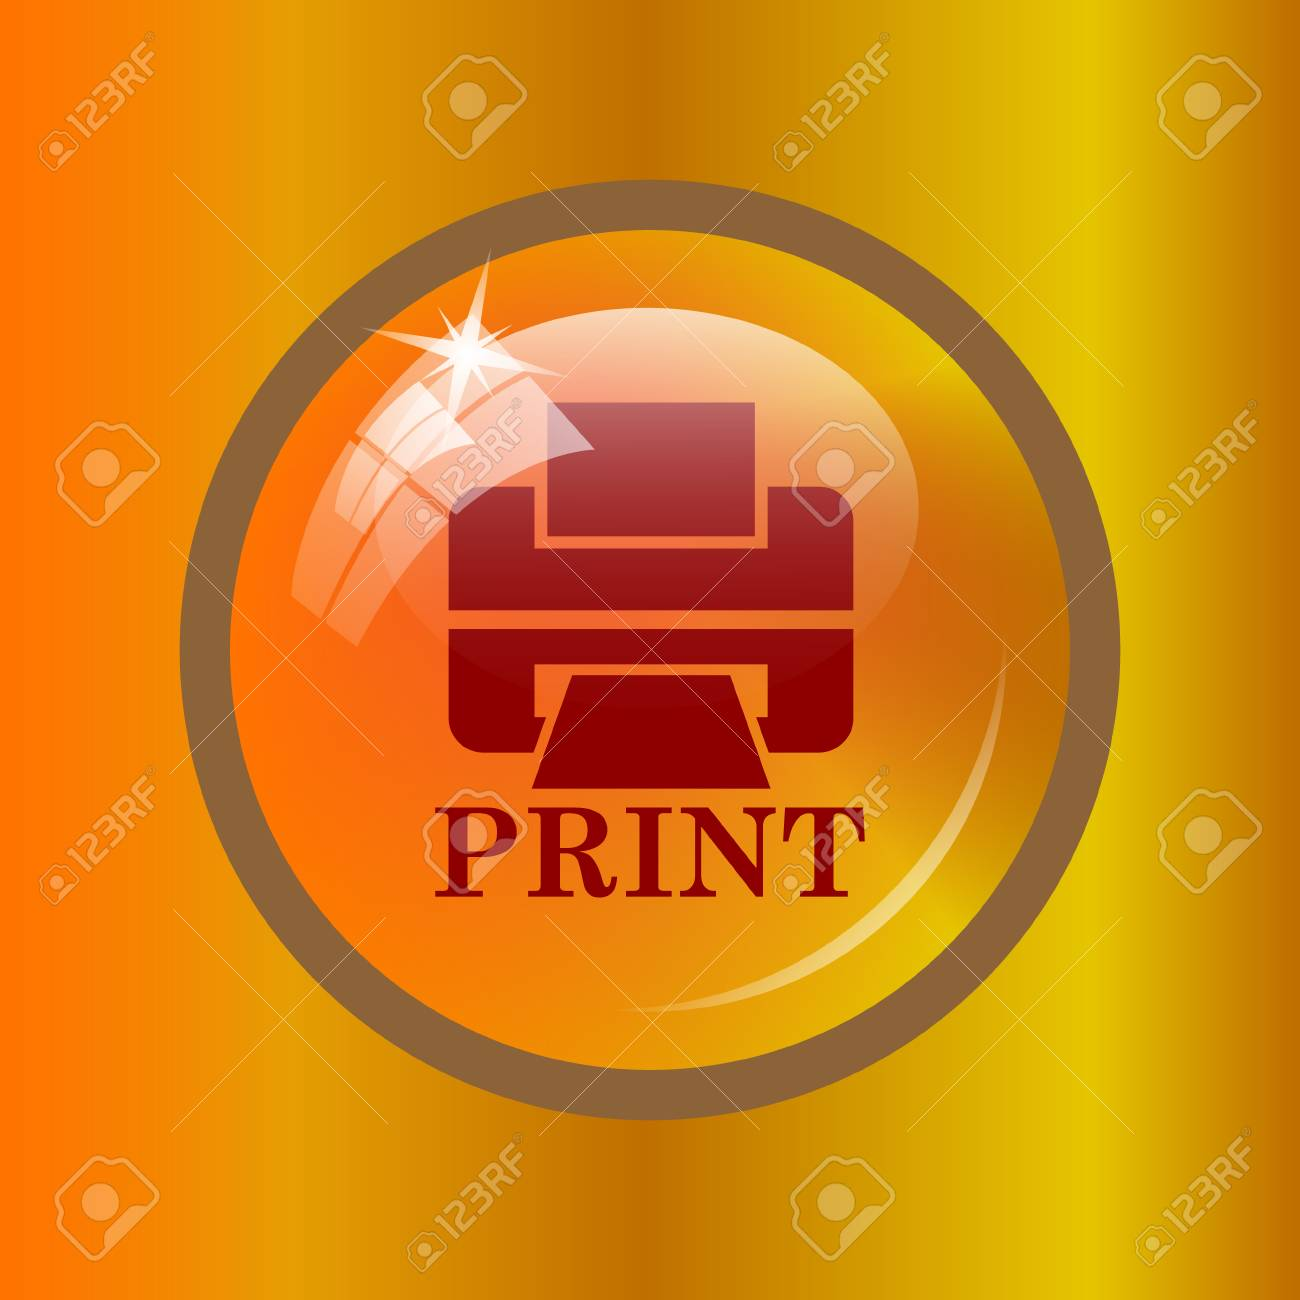 Printer With Word PRINT Icon Internet Button On Colored Background Stock Photo